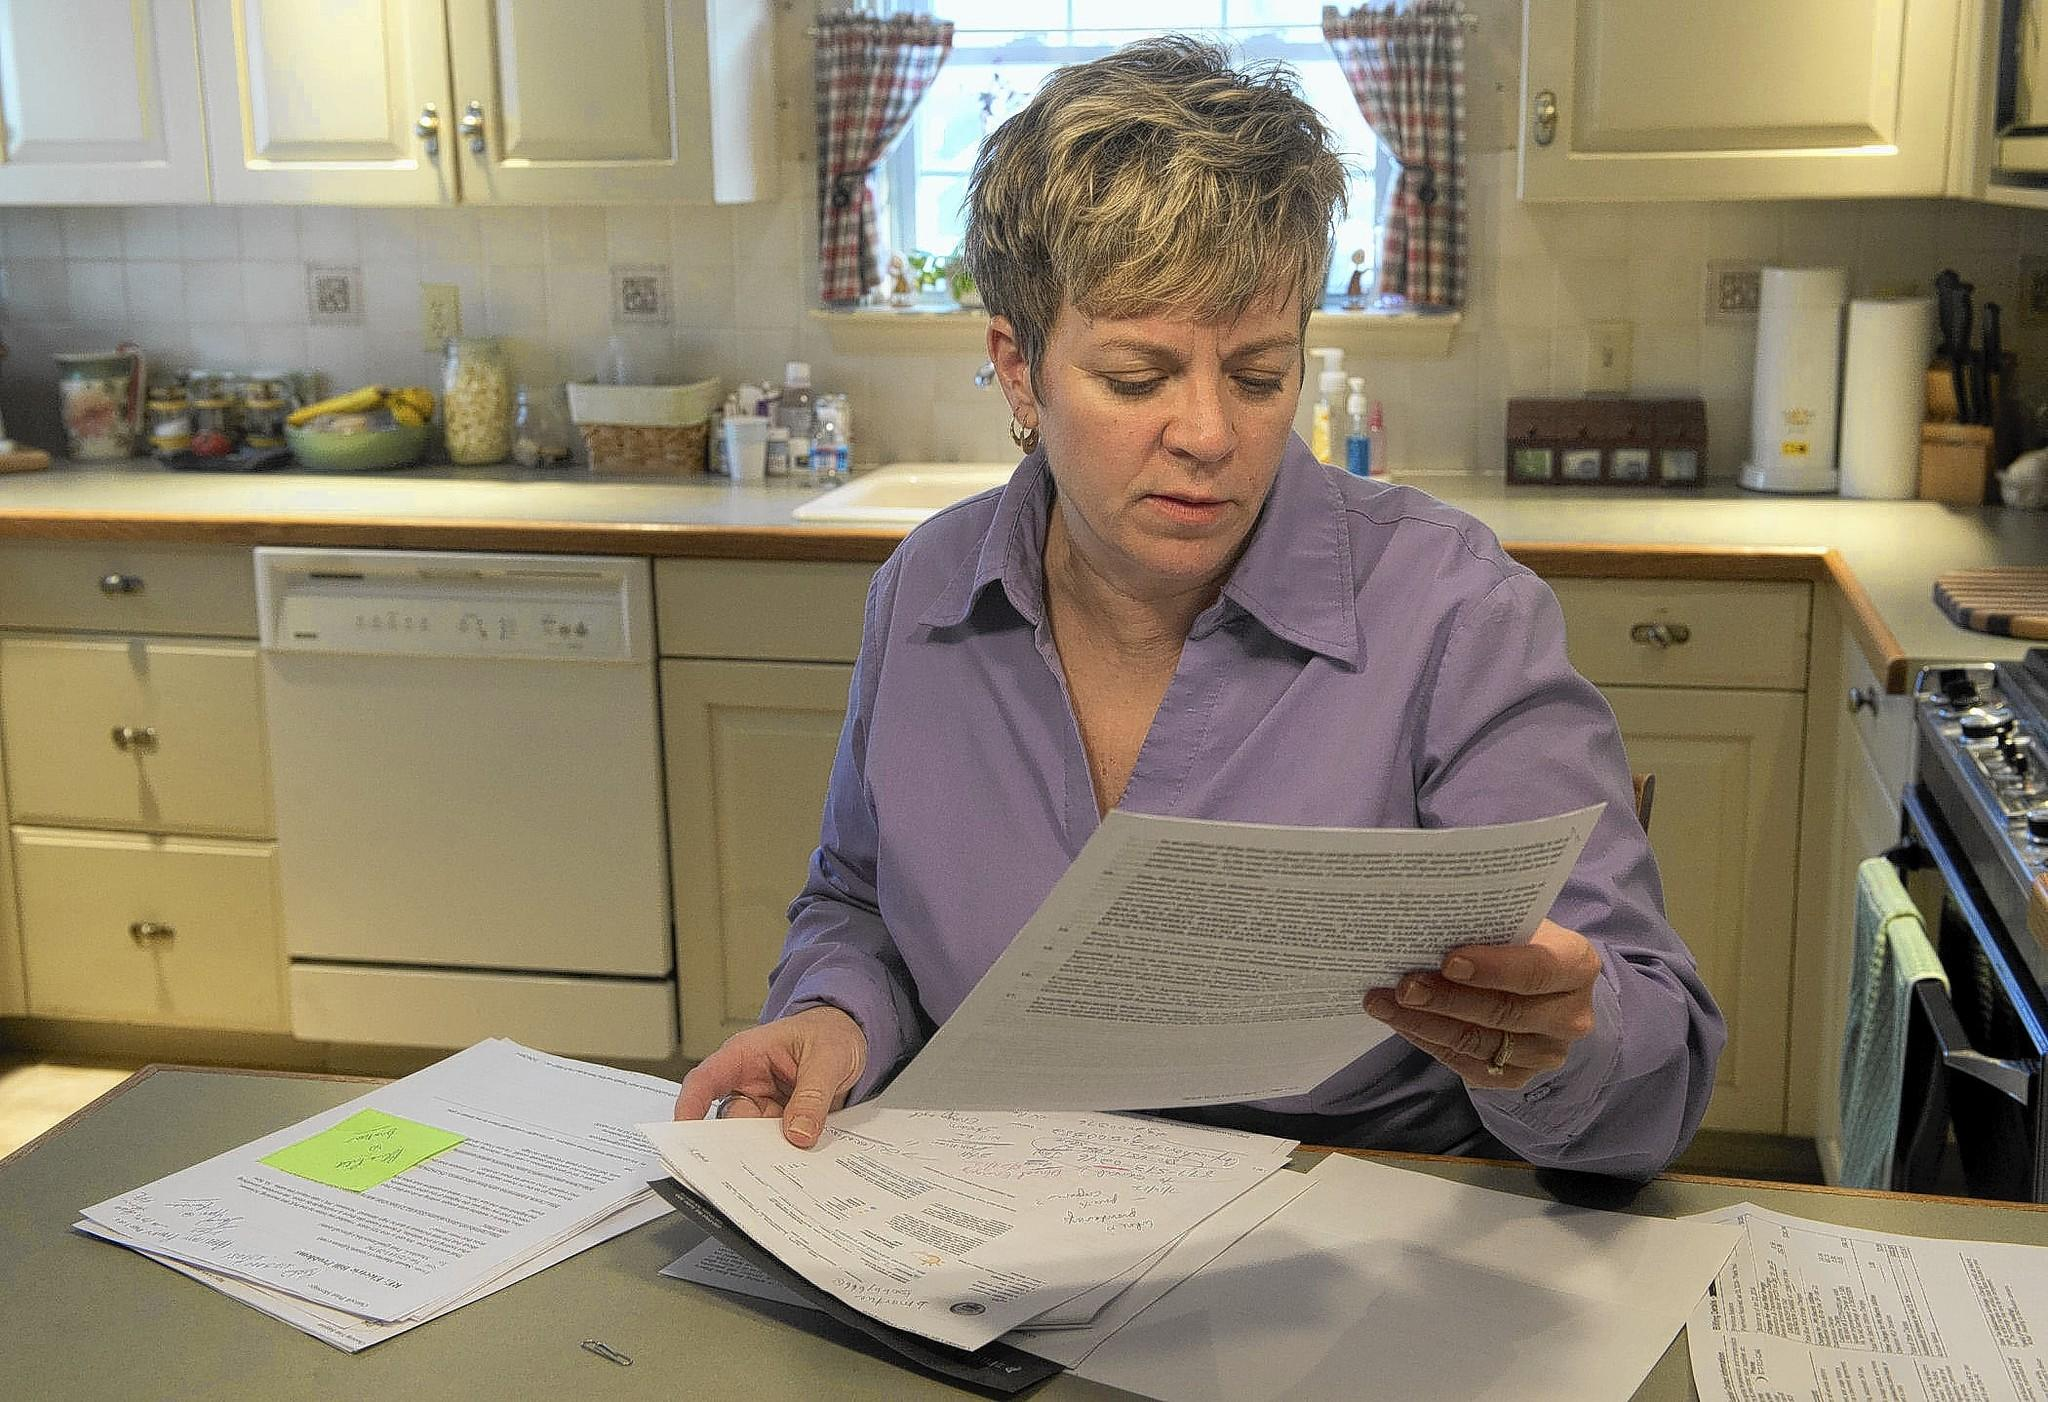 Susan Martucci of Salisbury Twp. was hit with a high electric bill after variable rates spiked. About 1400 people statewide are complaining about sharp increases in variable rate electric prices charged by alternate electric suppliers.